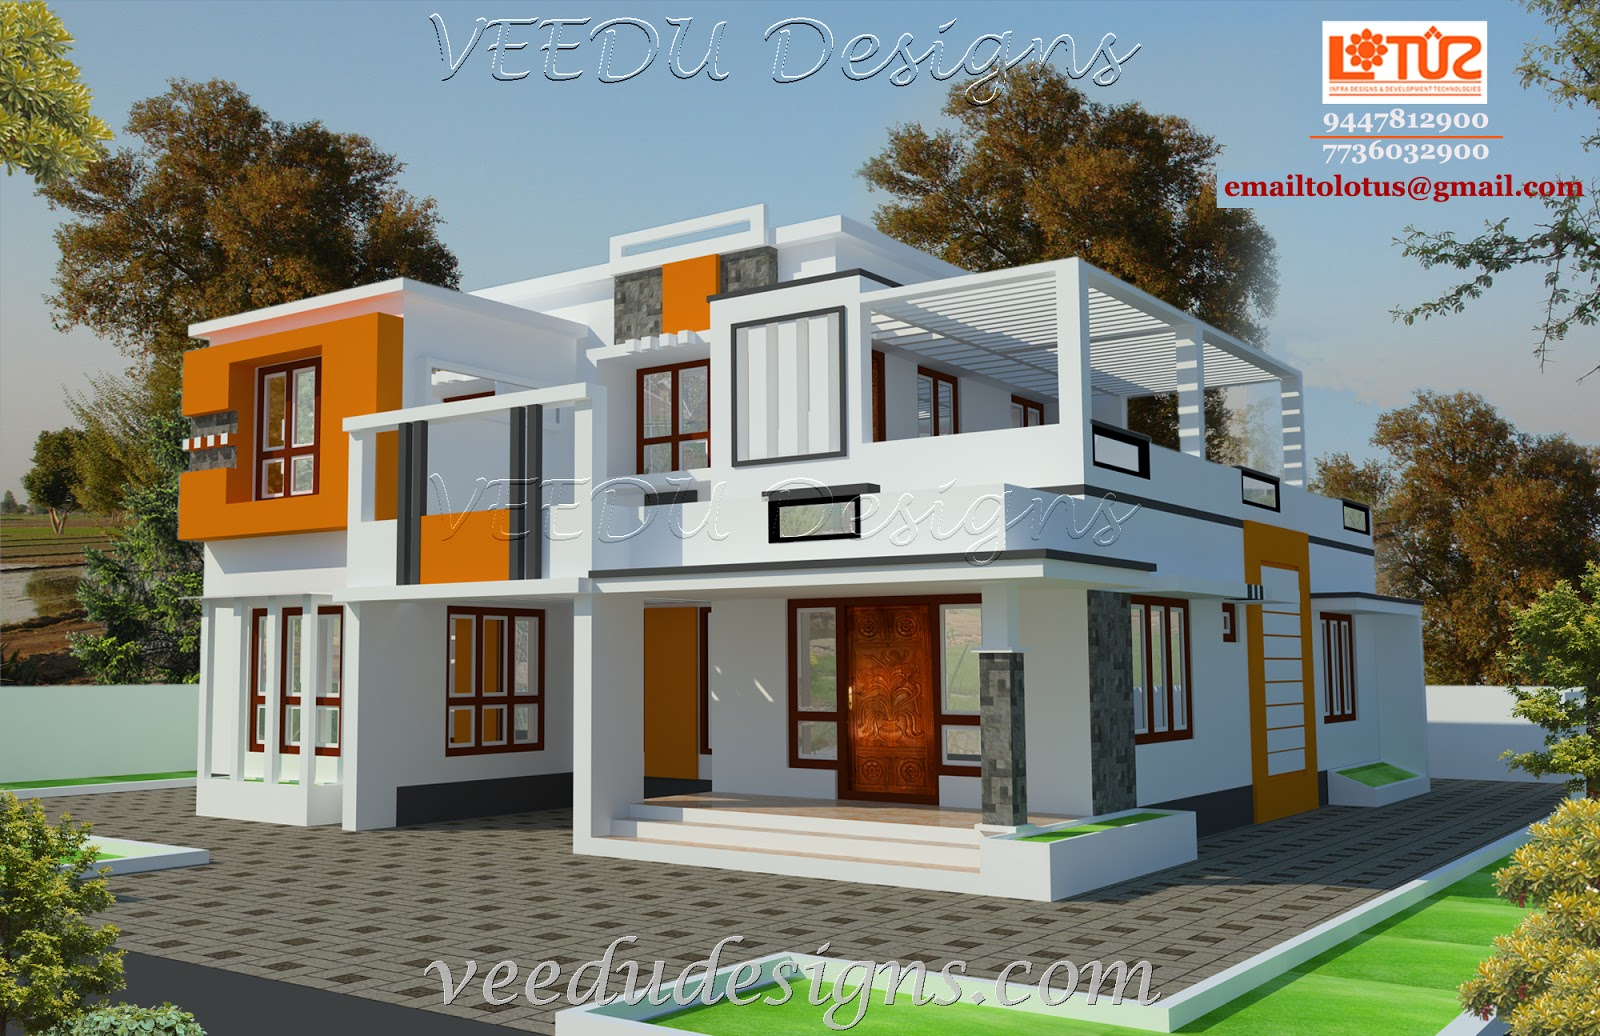 Veedu designs kerala home designs for Home design ideas